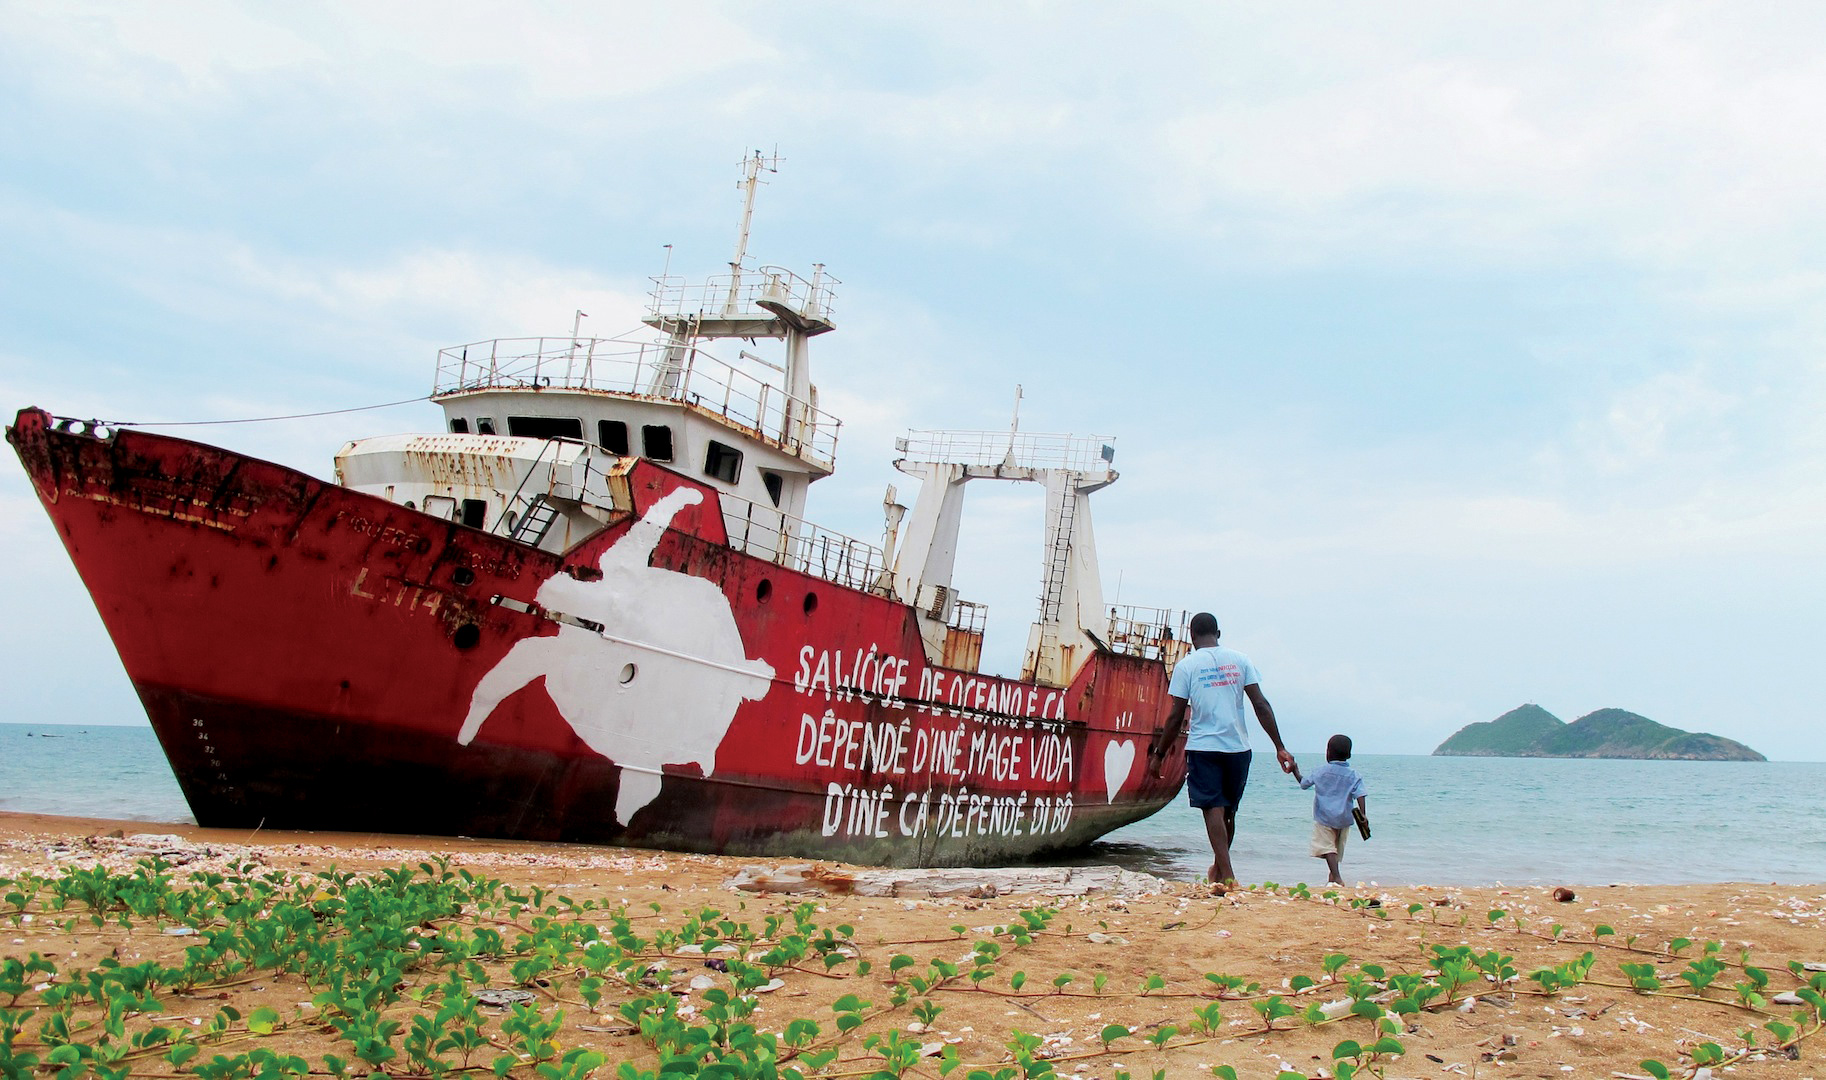 A sea turtle conservation message in local dialect was painted on an abandoned boat near the main nesting area on São Tomé Island. © ANA BESUGO